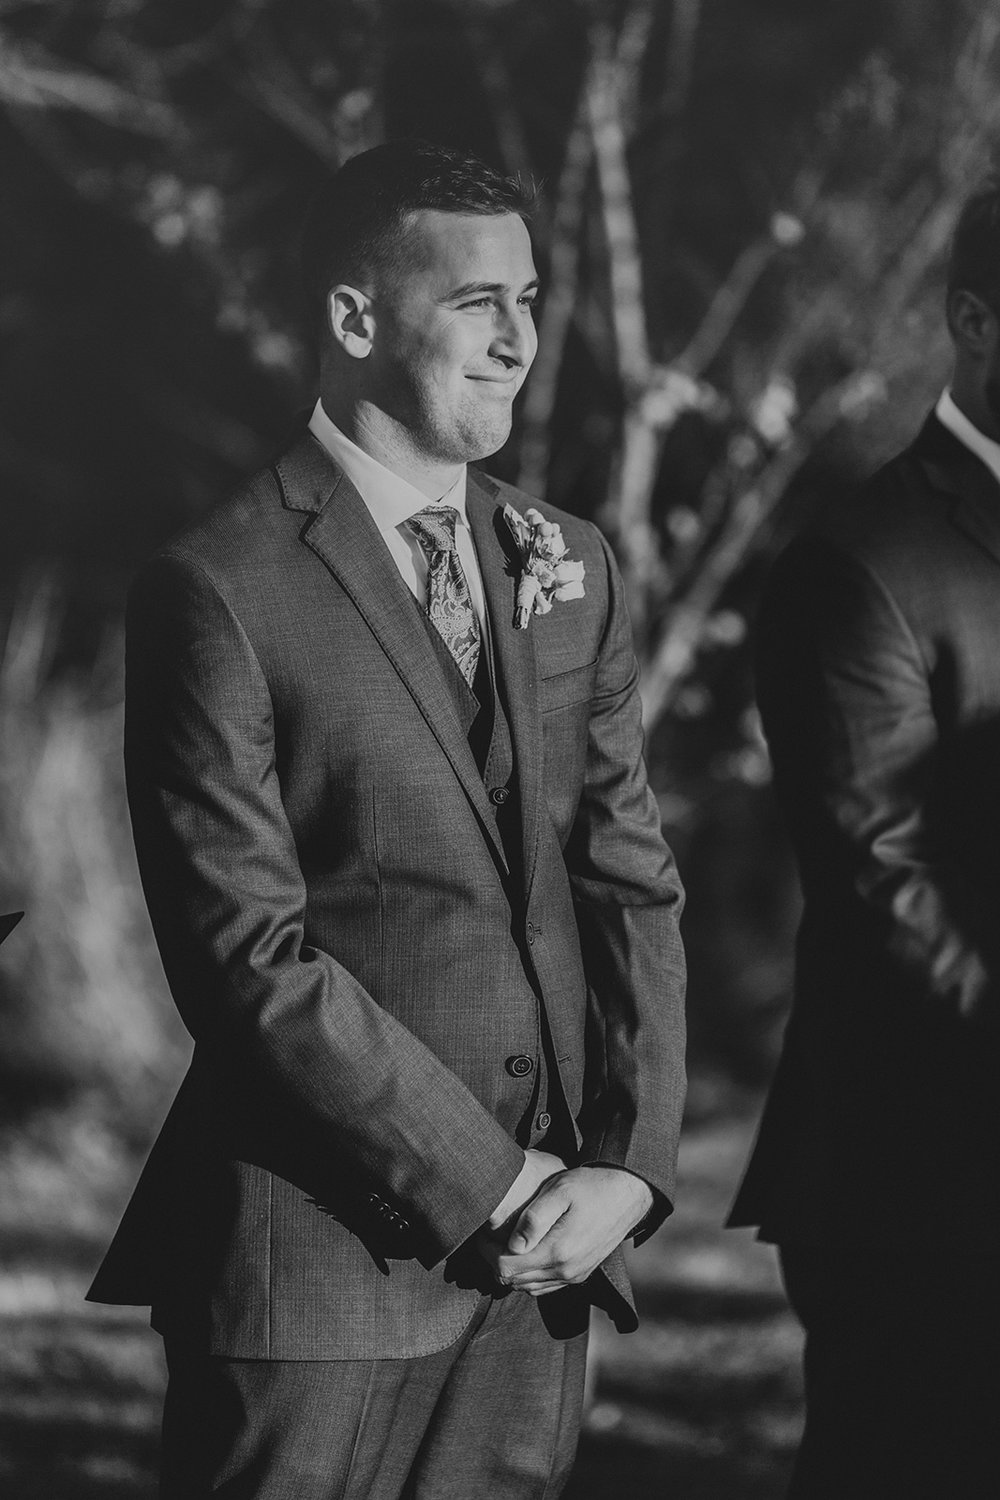 brielle-davis-events-48-fields-wedding-ceremony-groom-waiting.jpg